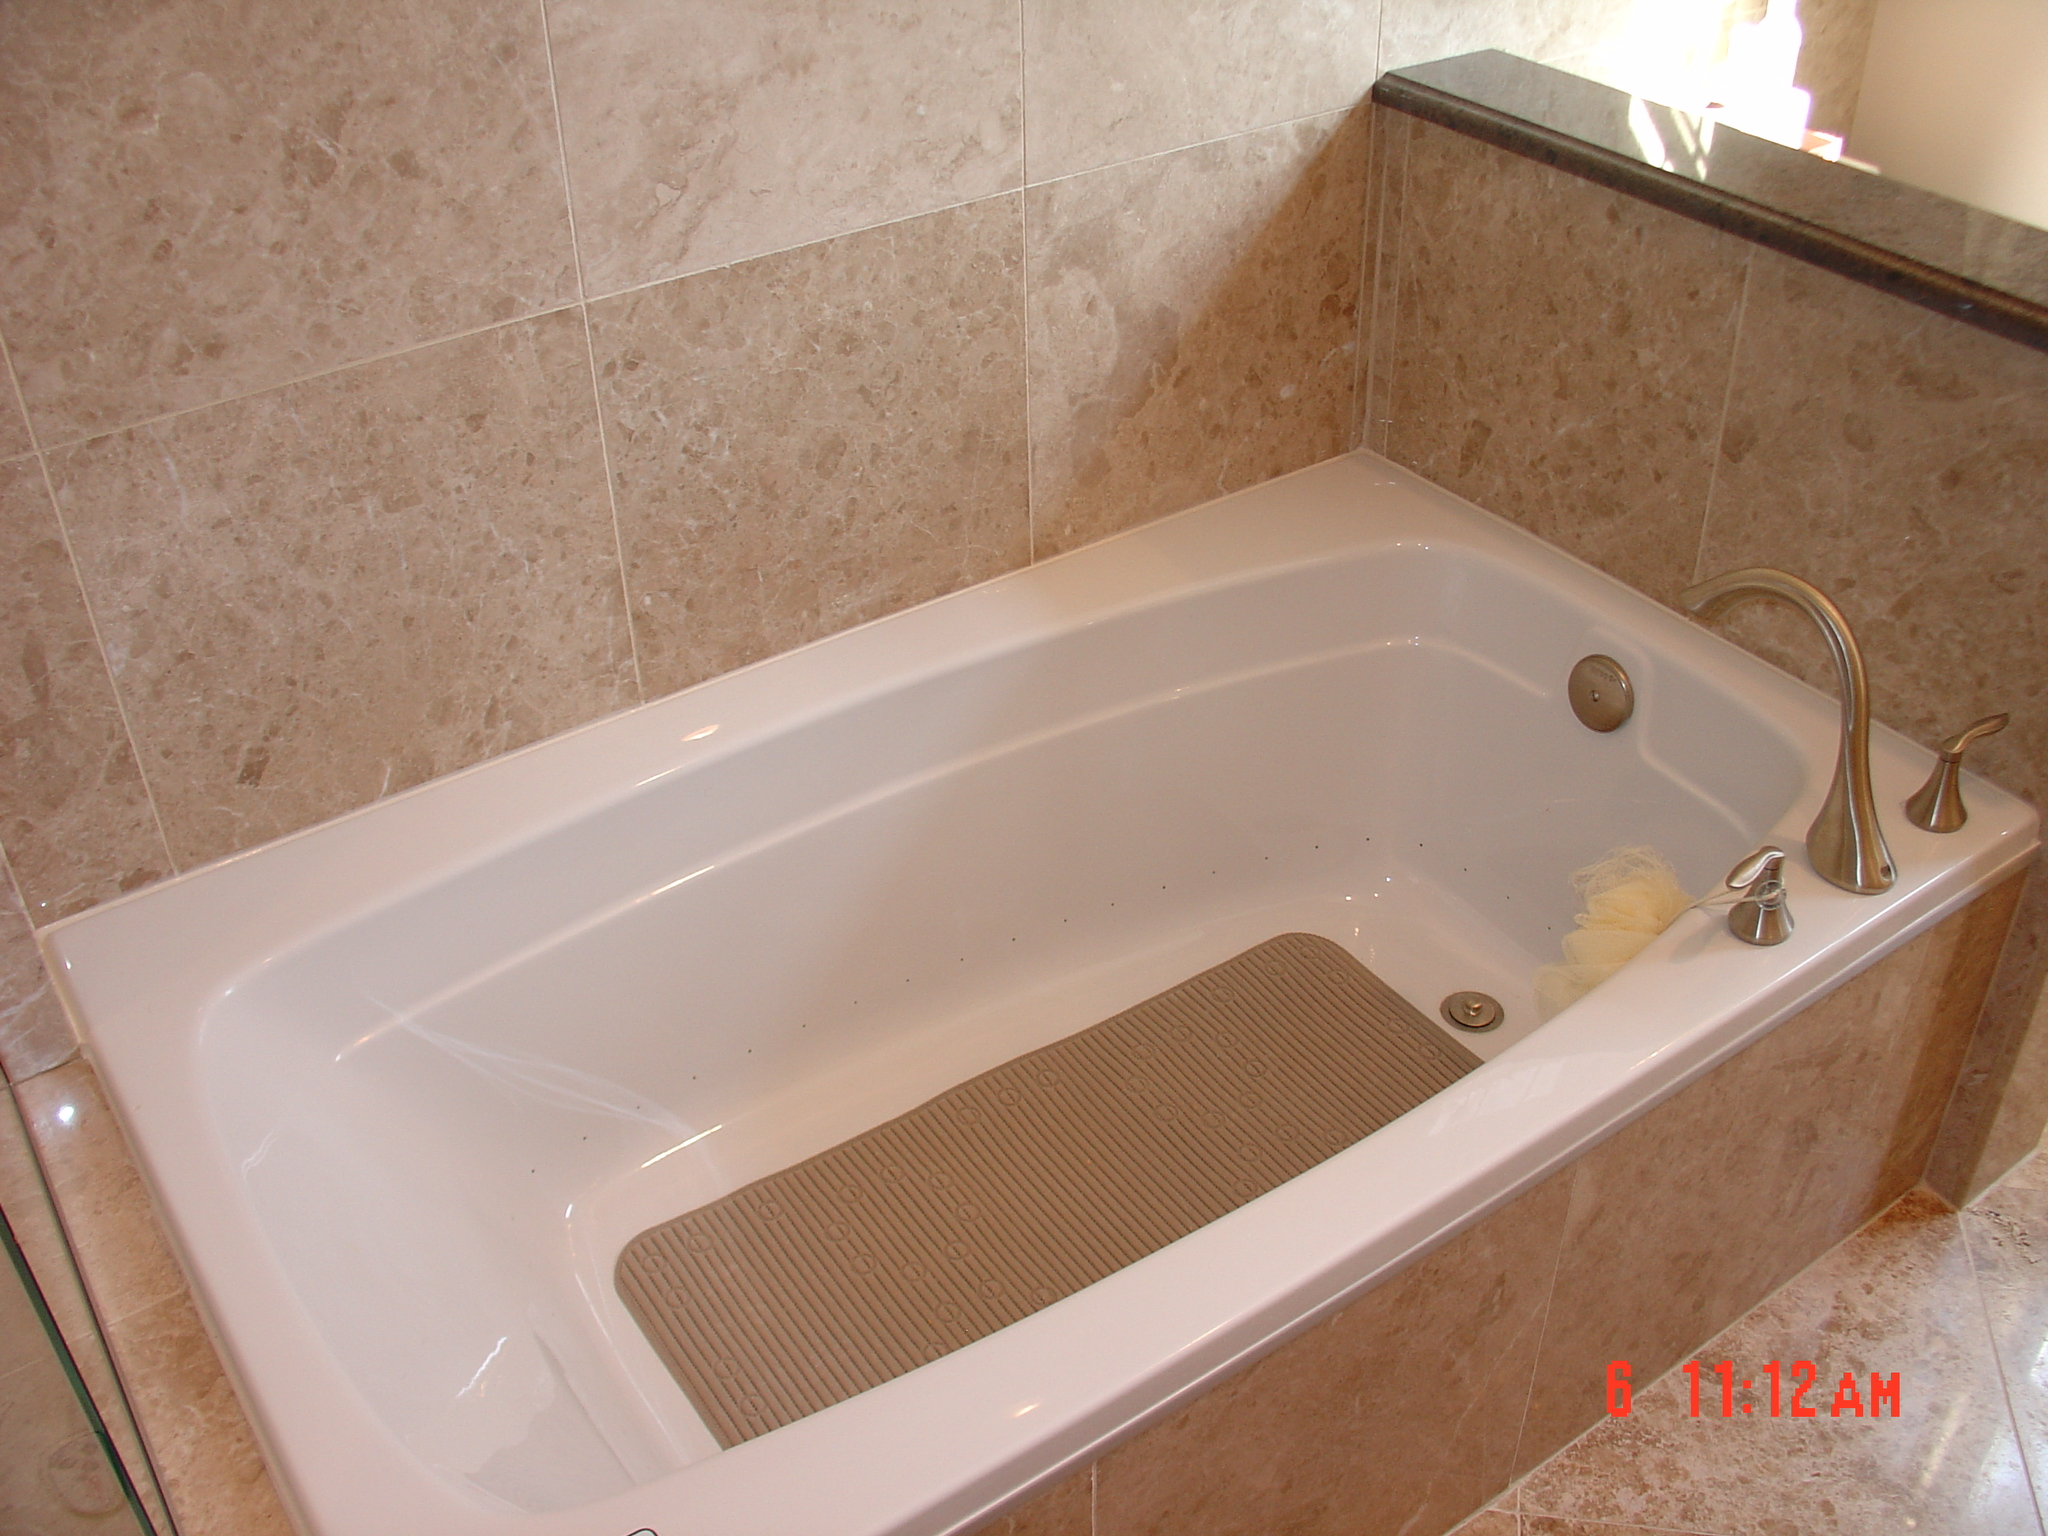 Bath remodeling bathtub reglazing bathtub liners st for Tub liner installation